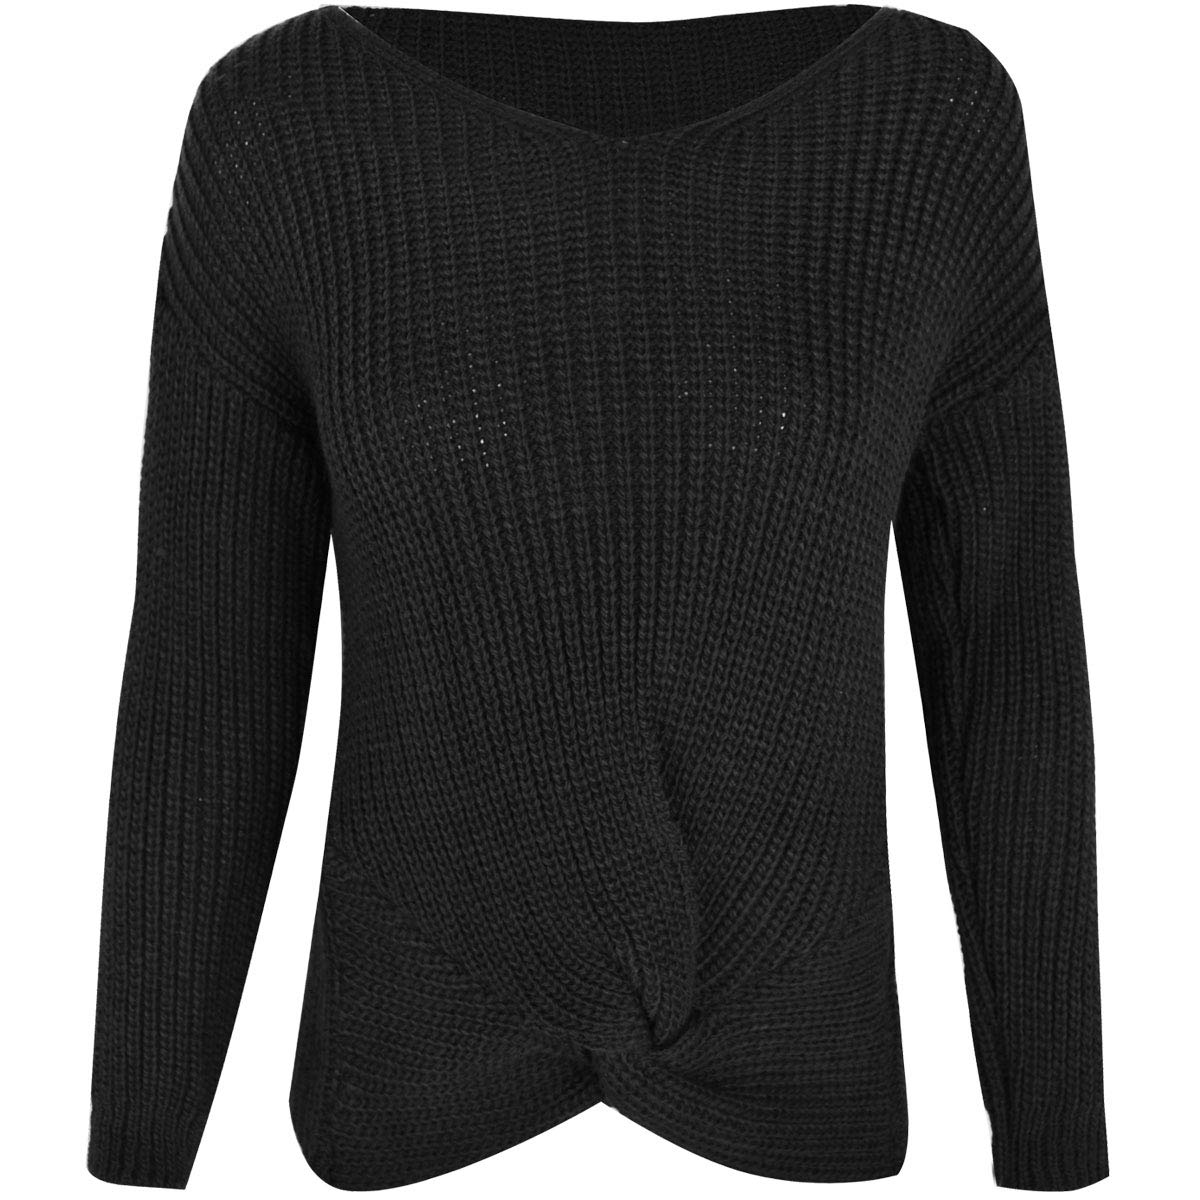 Fashion Thirsty Womens Knitted Twist Knot Jumper Long Sleeve V Neck Top US Size 4-12 Black